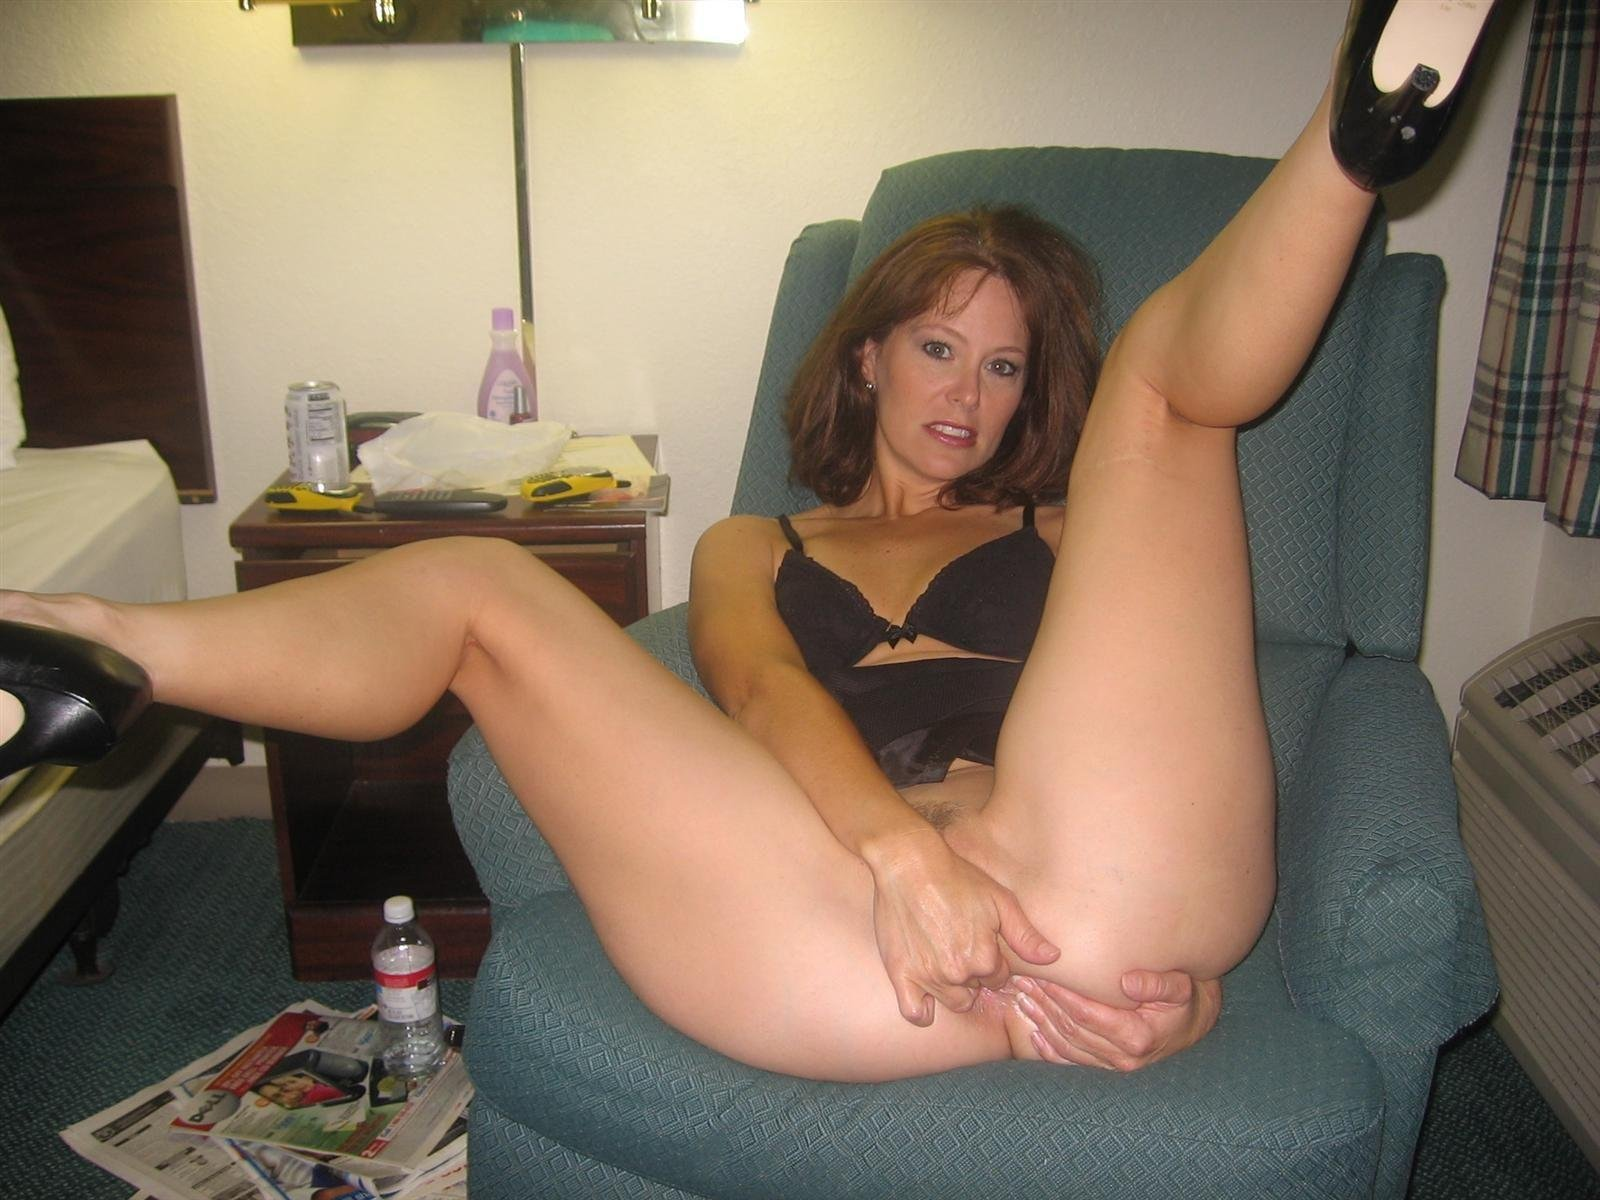 Milf video galleries amateurs